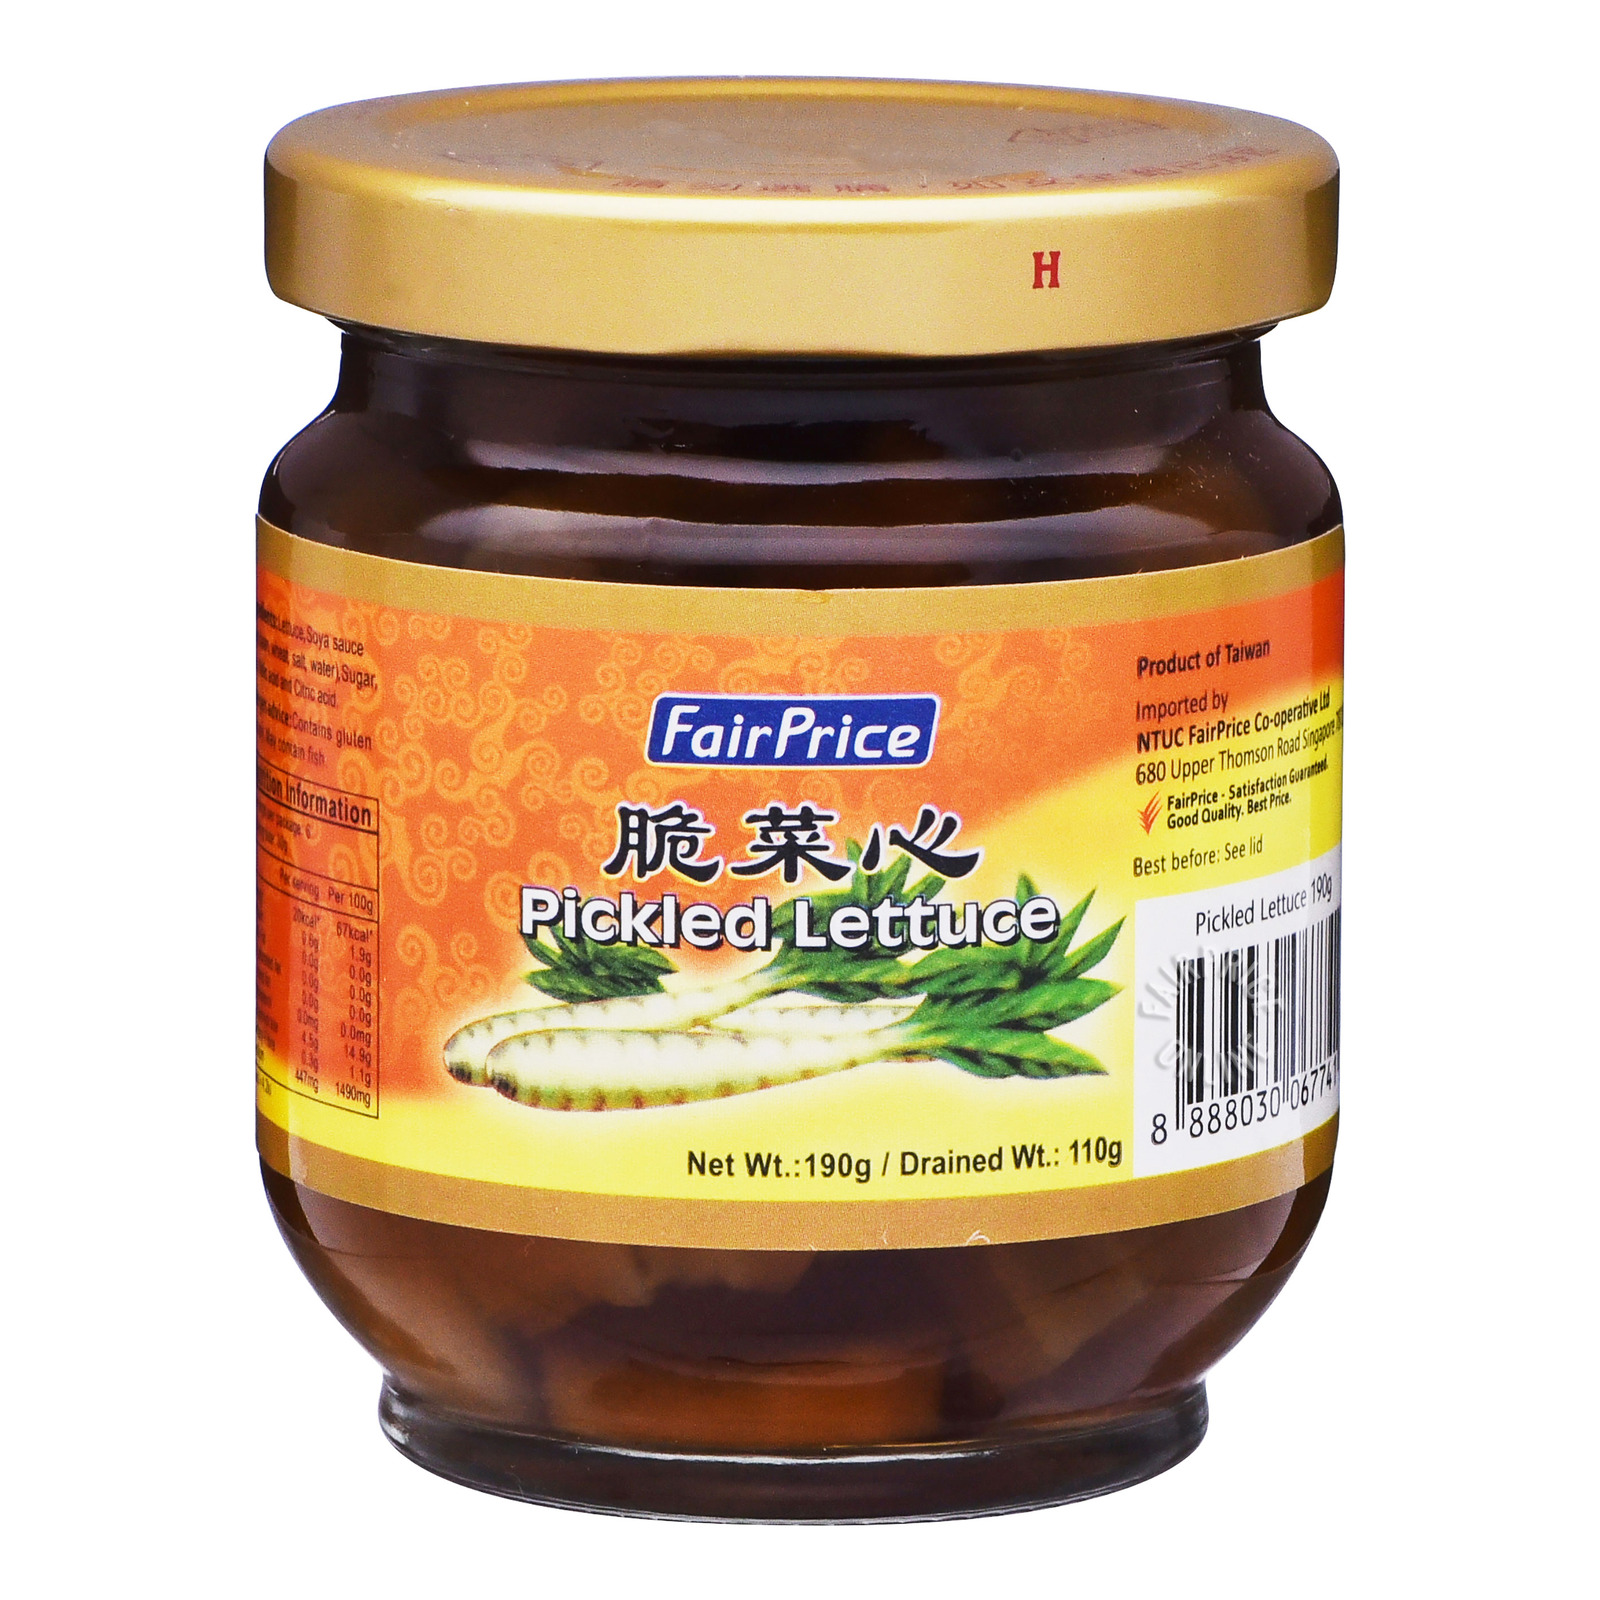 FairPrice Pickled Lettuce